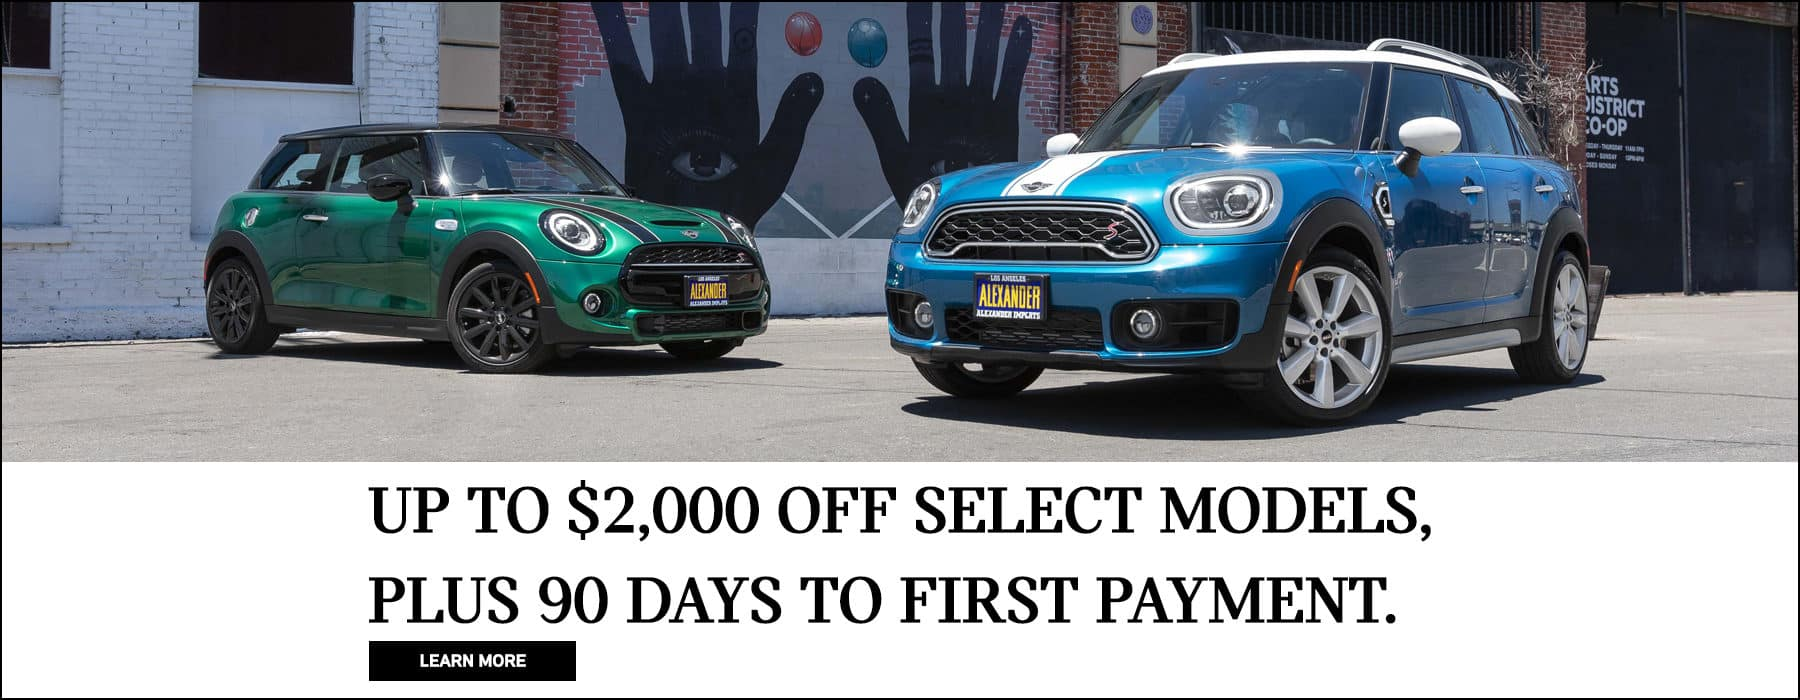 up to $2,000 off select models. plus 90 days to first payment.